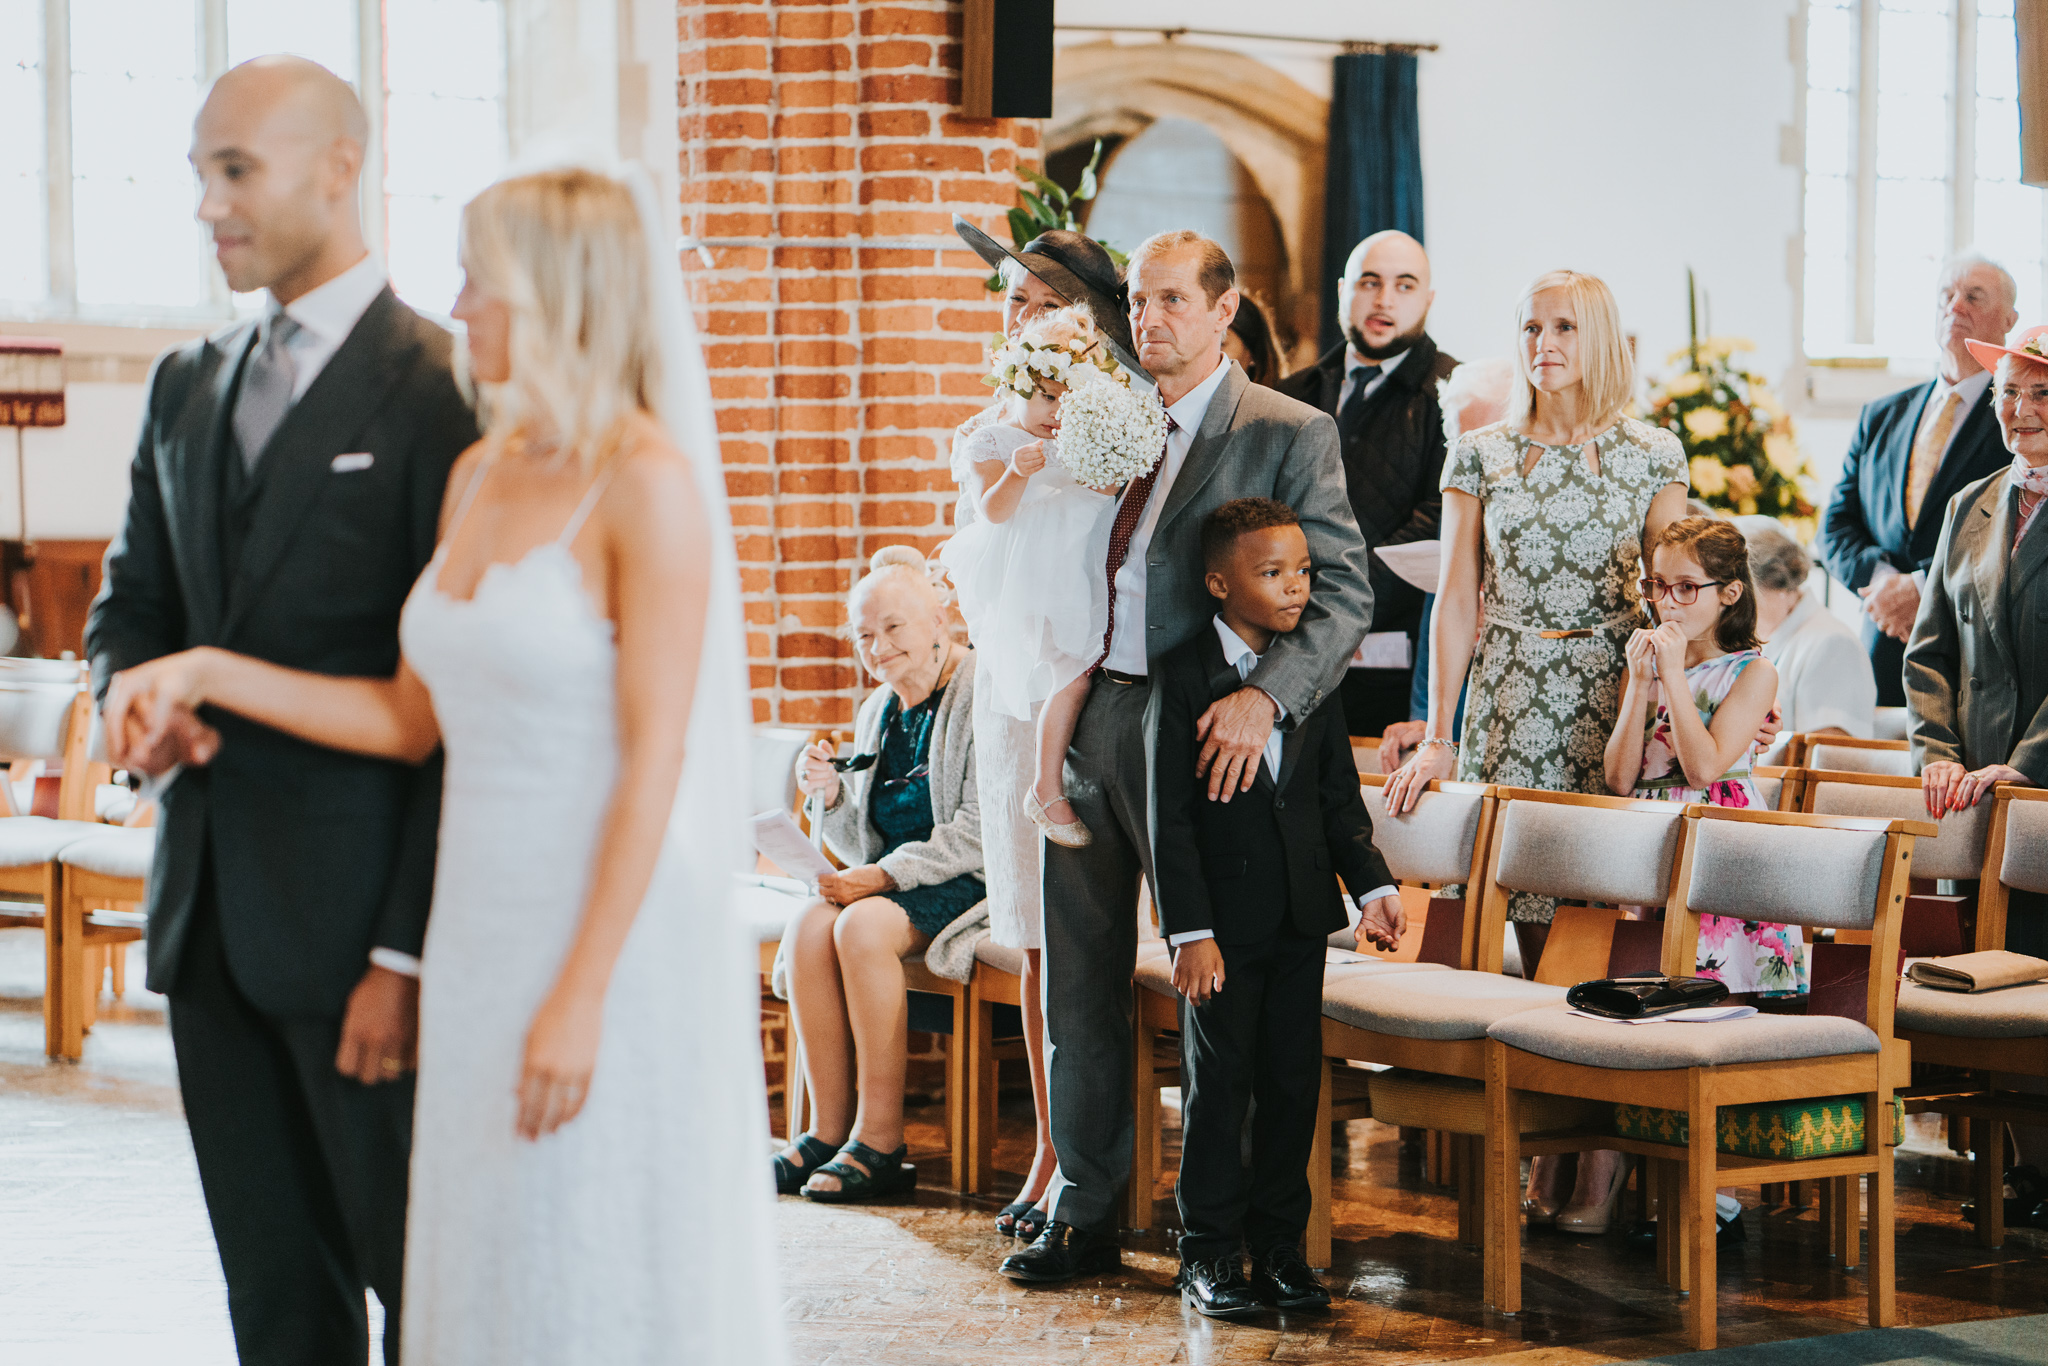 intimate-english-church-wedding-sarah-alex-colchester-essex-grace-elizabeth-colchester-essex-alternative-wedding-lifestyle-photographer-essex-suffolk-norfolk-devon (54 of 92).jpg